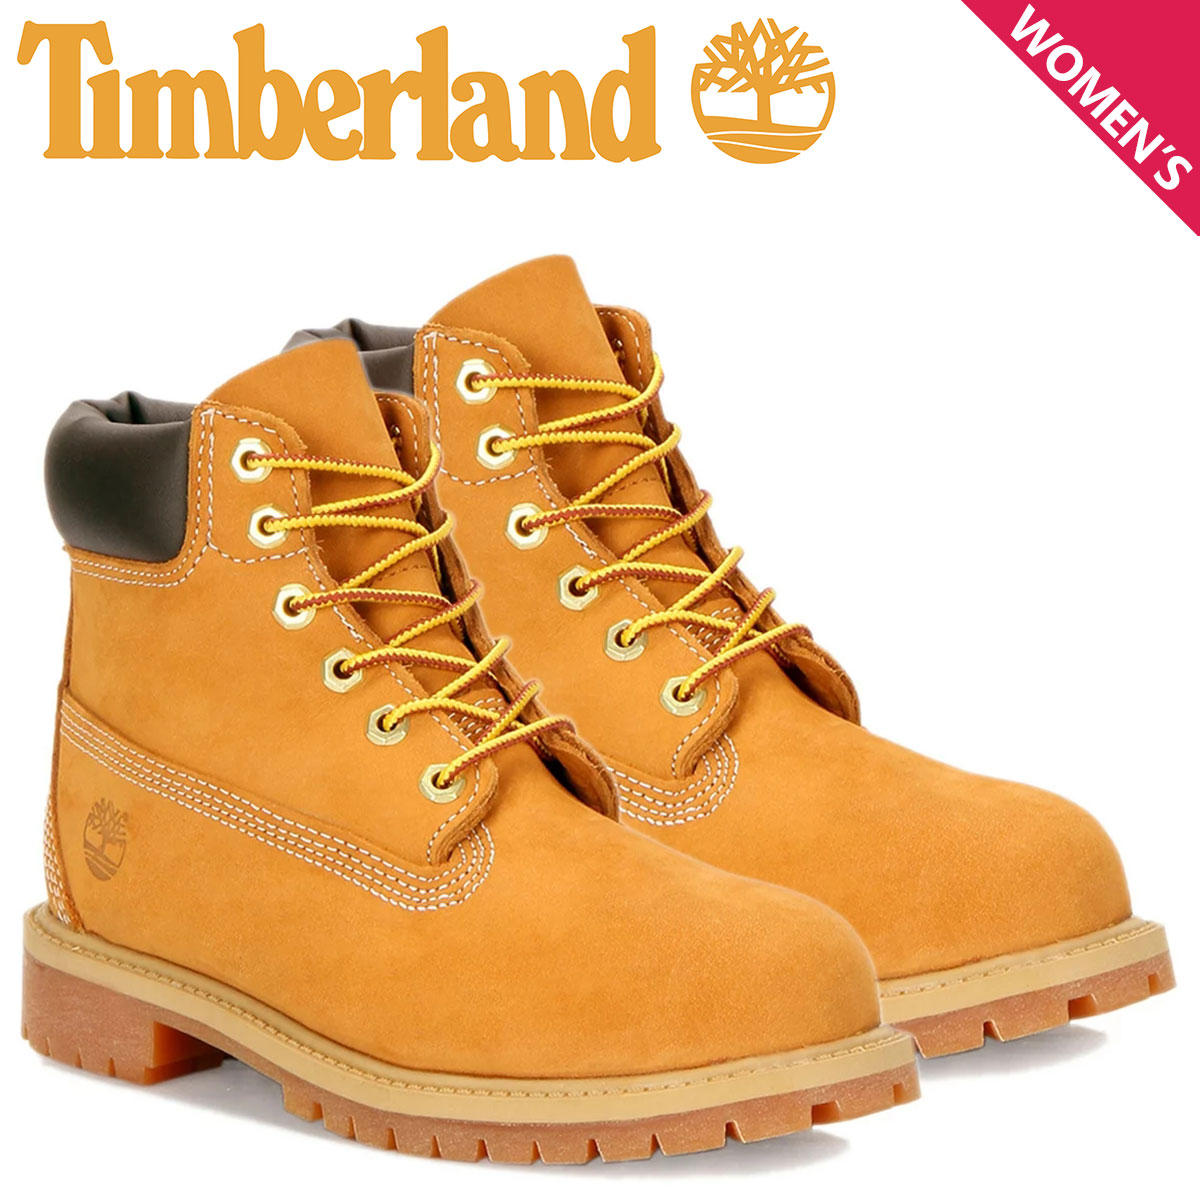 Sugar Online Shop  Timberland Timberland 6 inch premium boots 10361 6 INCH  PREMIUM BOOT leather junior kids child ladies  74d8dae4f14